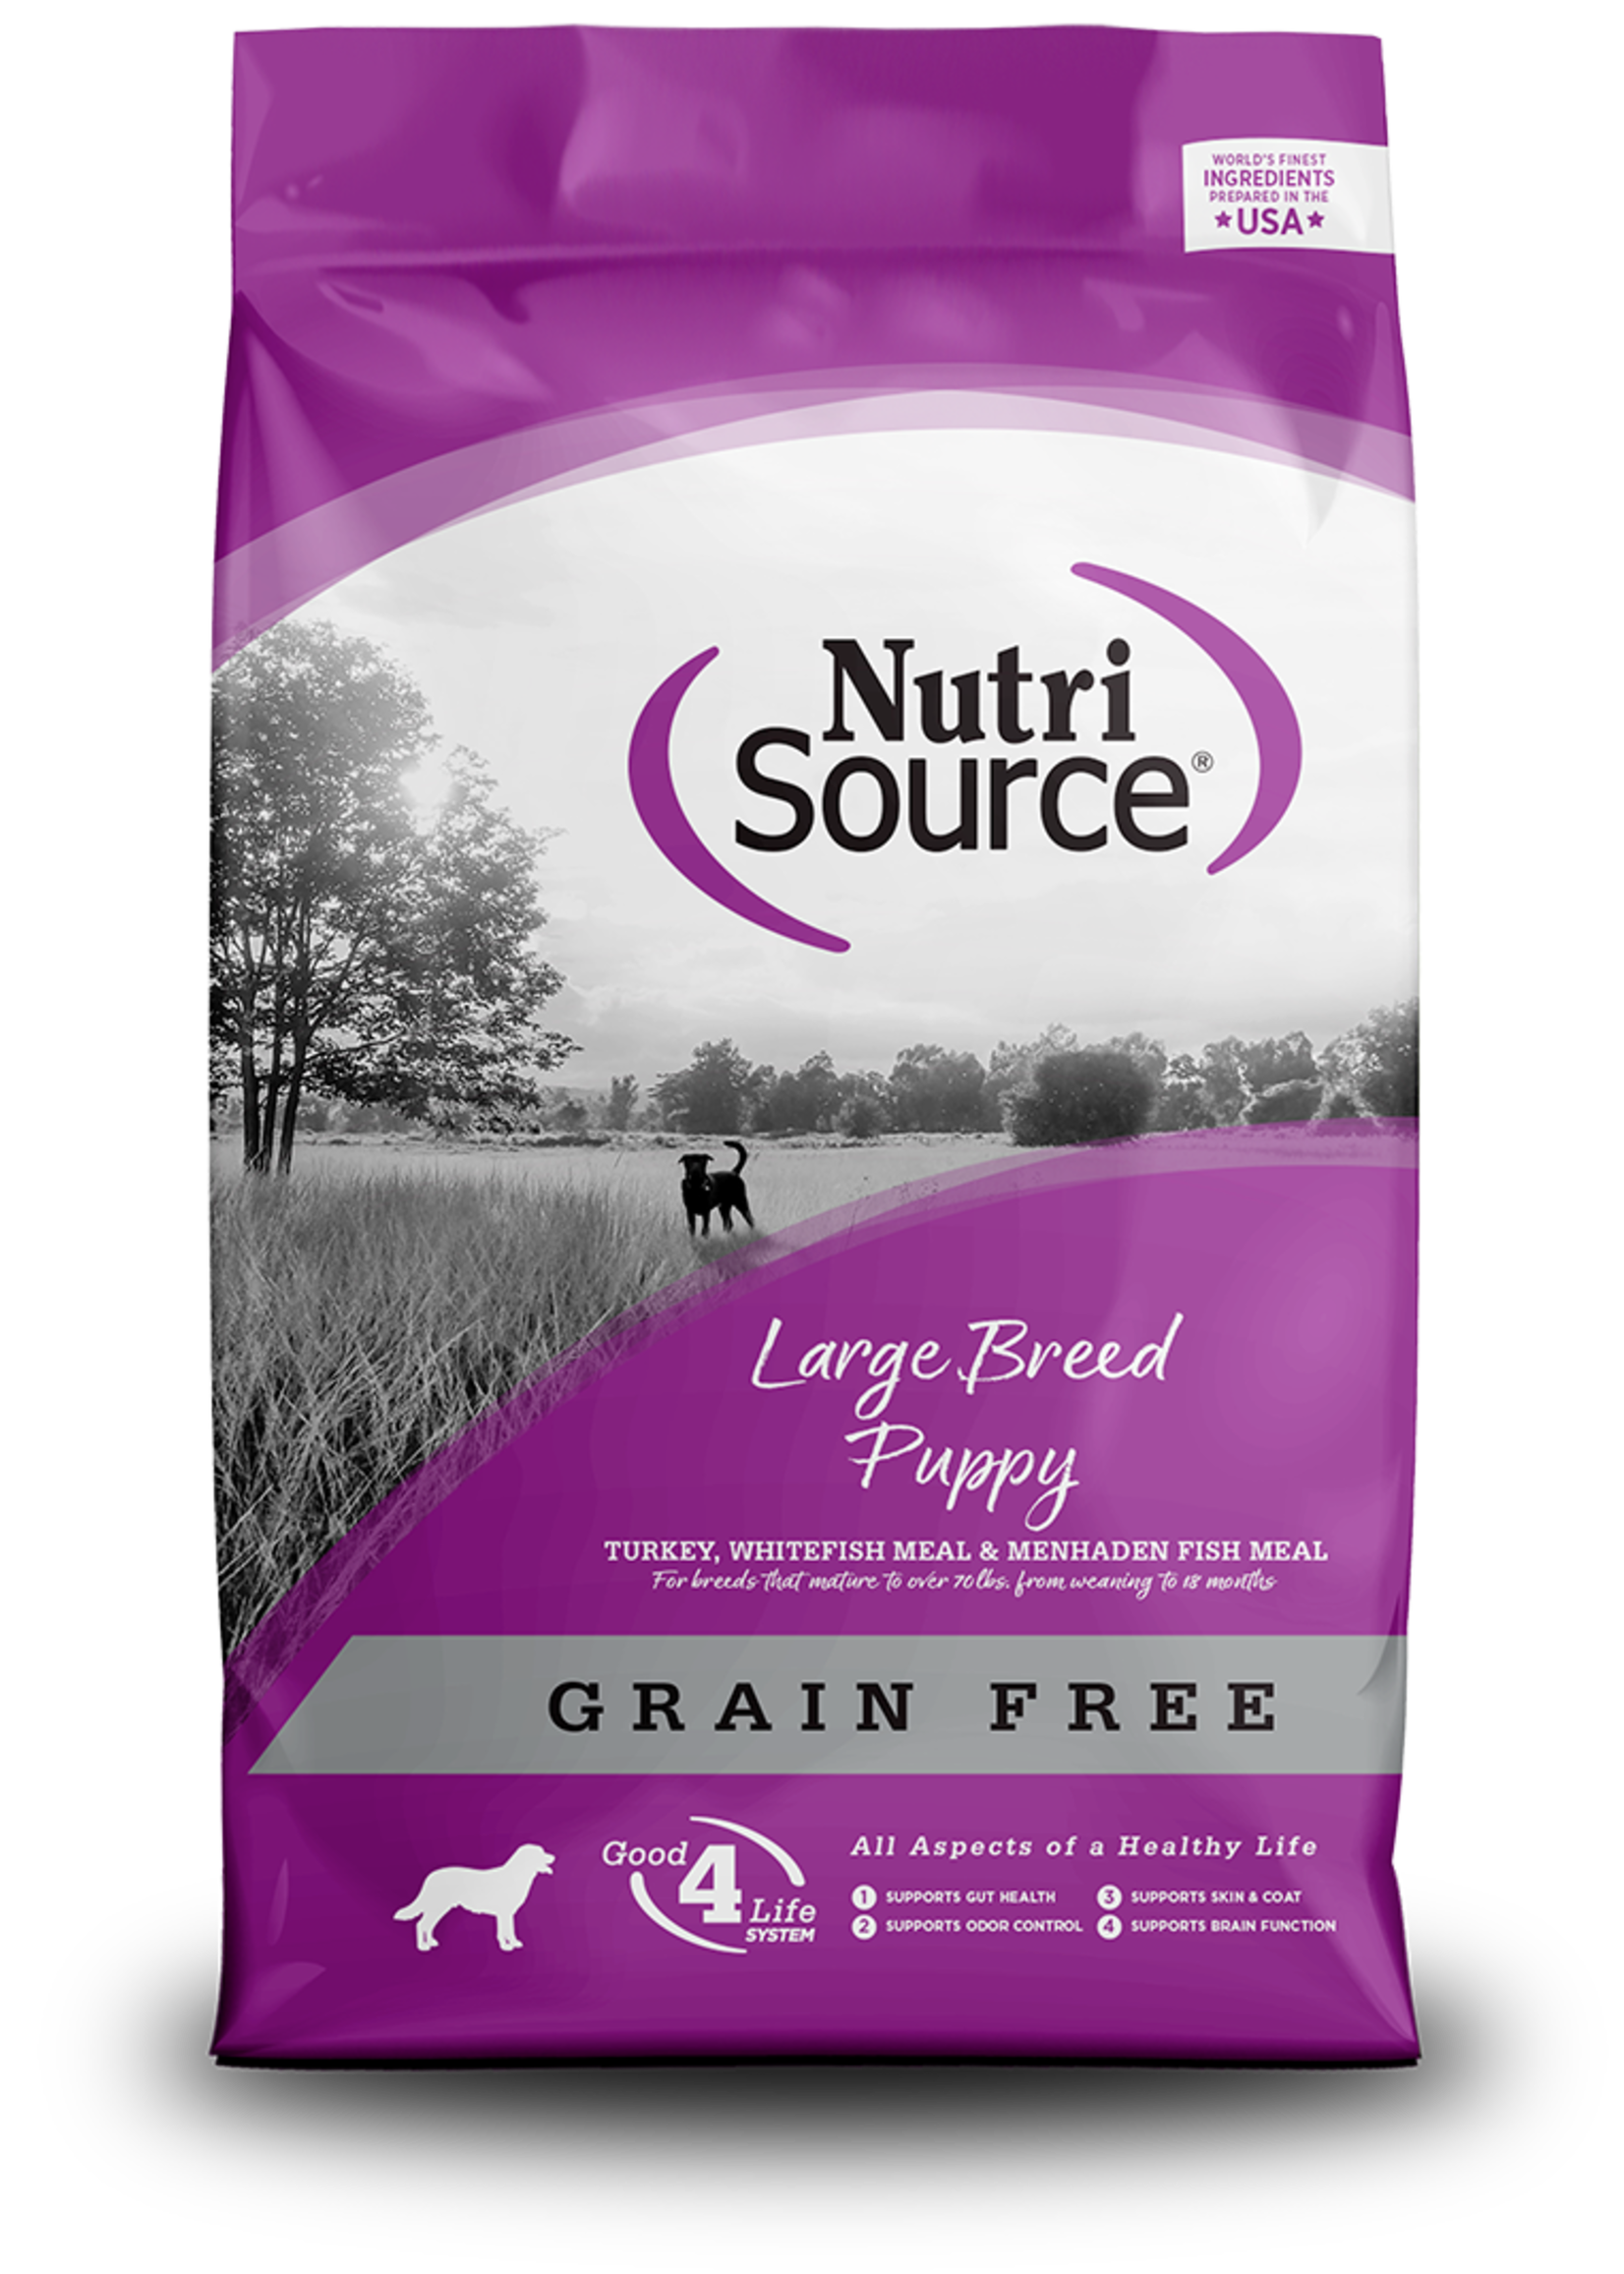 Nutrisource Nutrisource Grain-Free Large Breed Puppy Dry Dog Food 15lbs